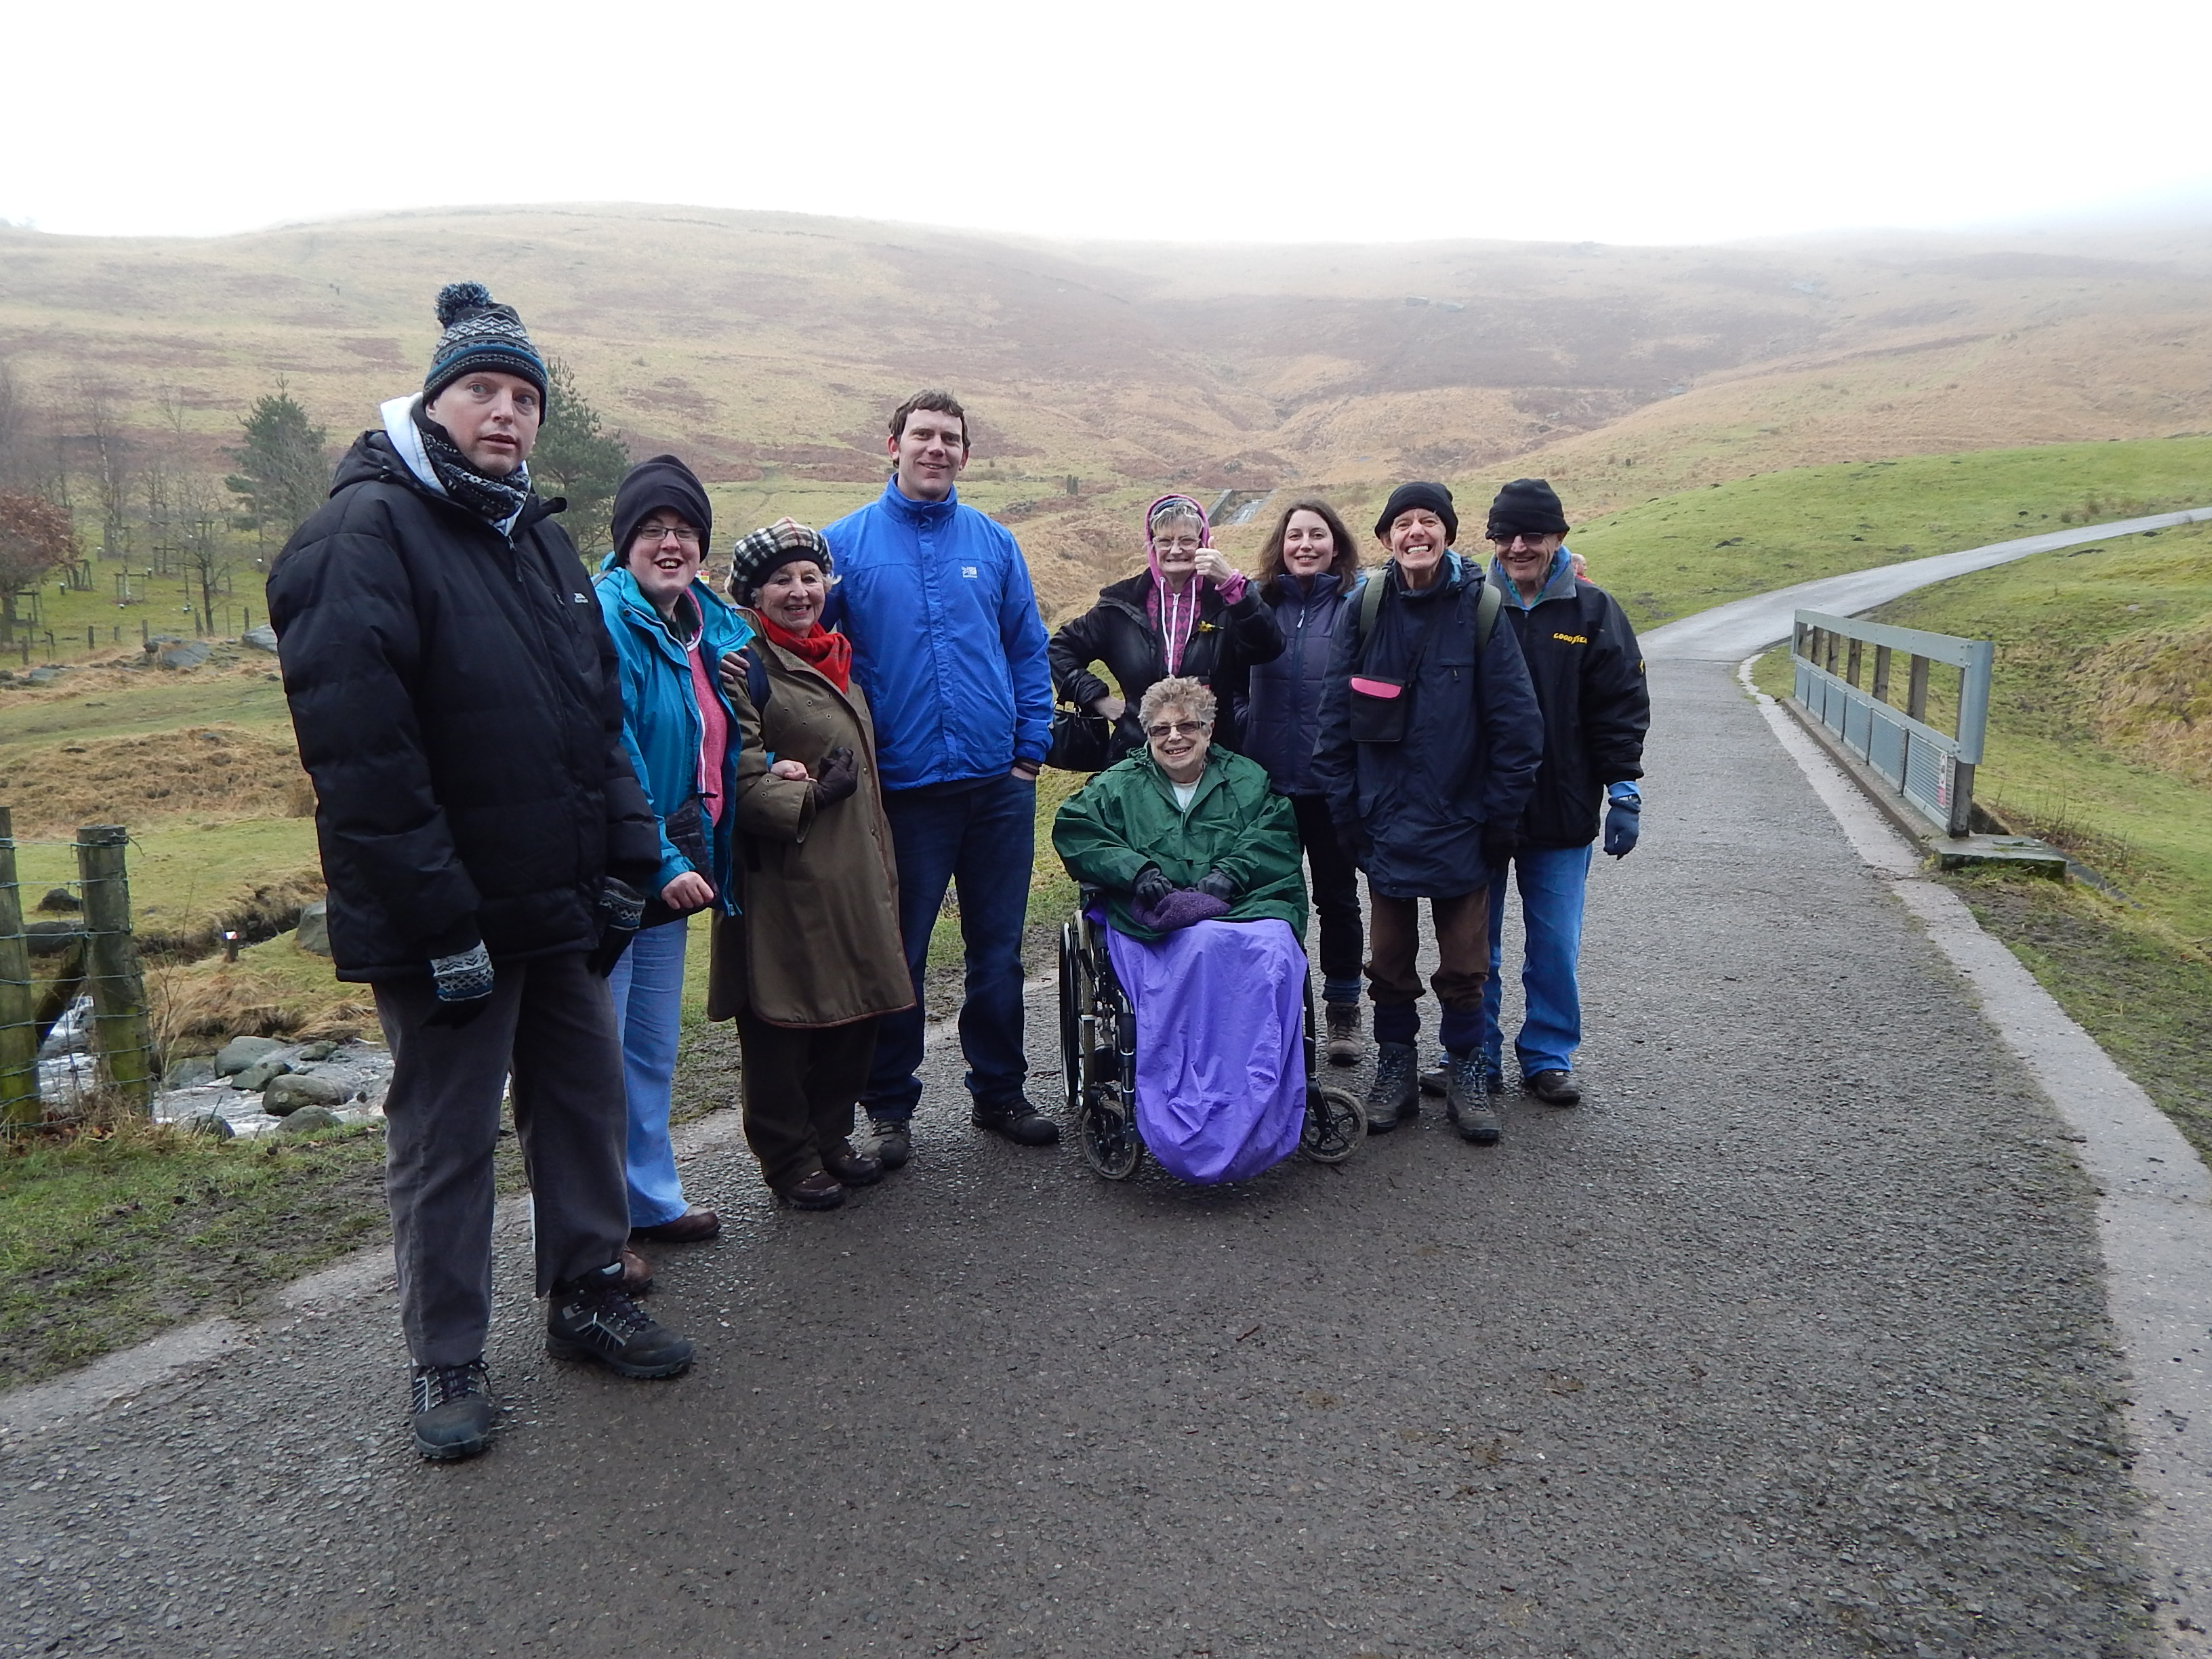 a walking group on a path with hills and mist behind